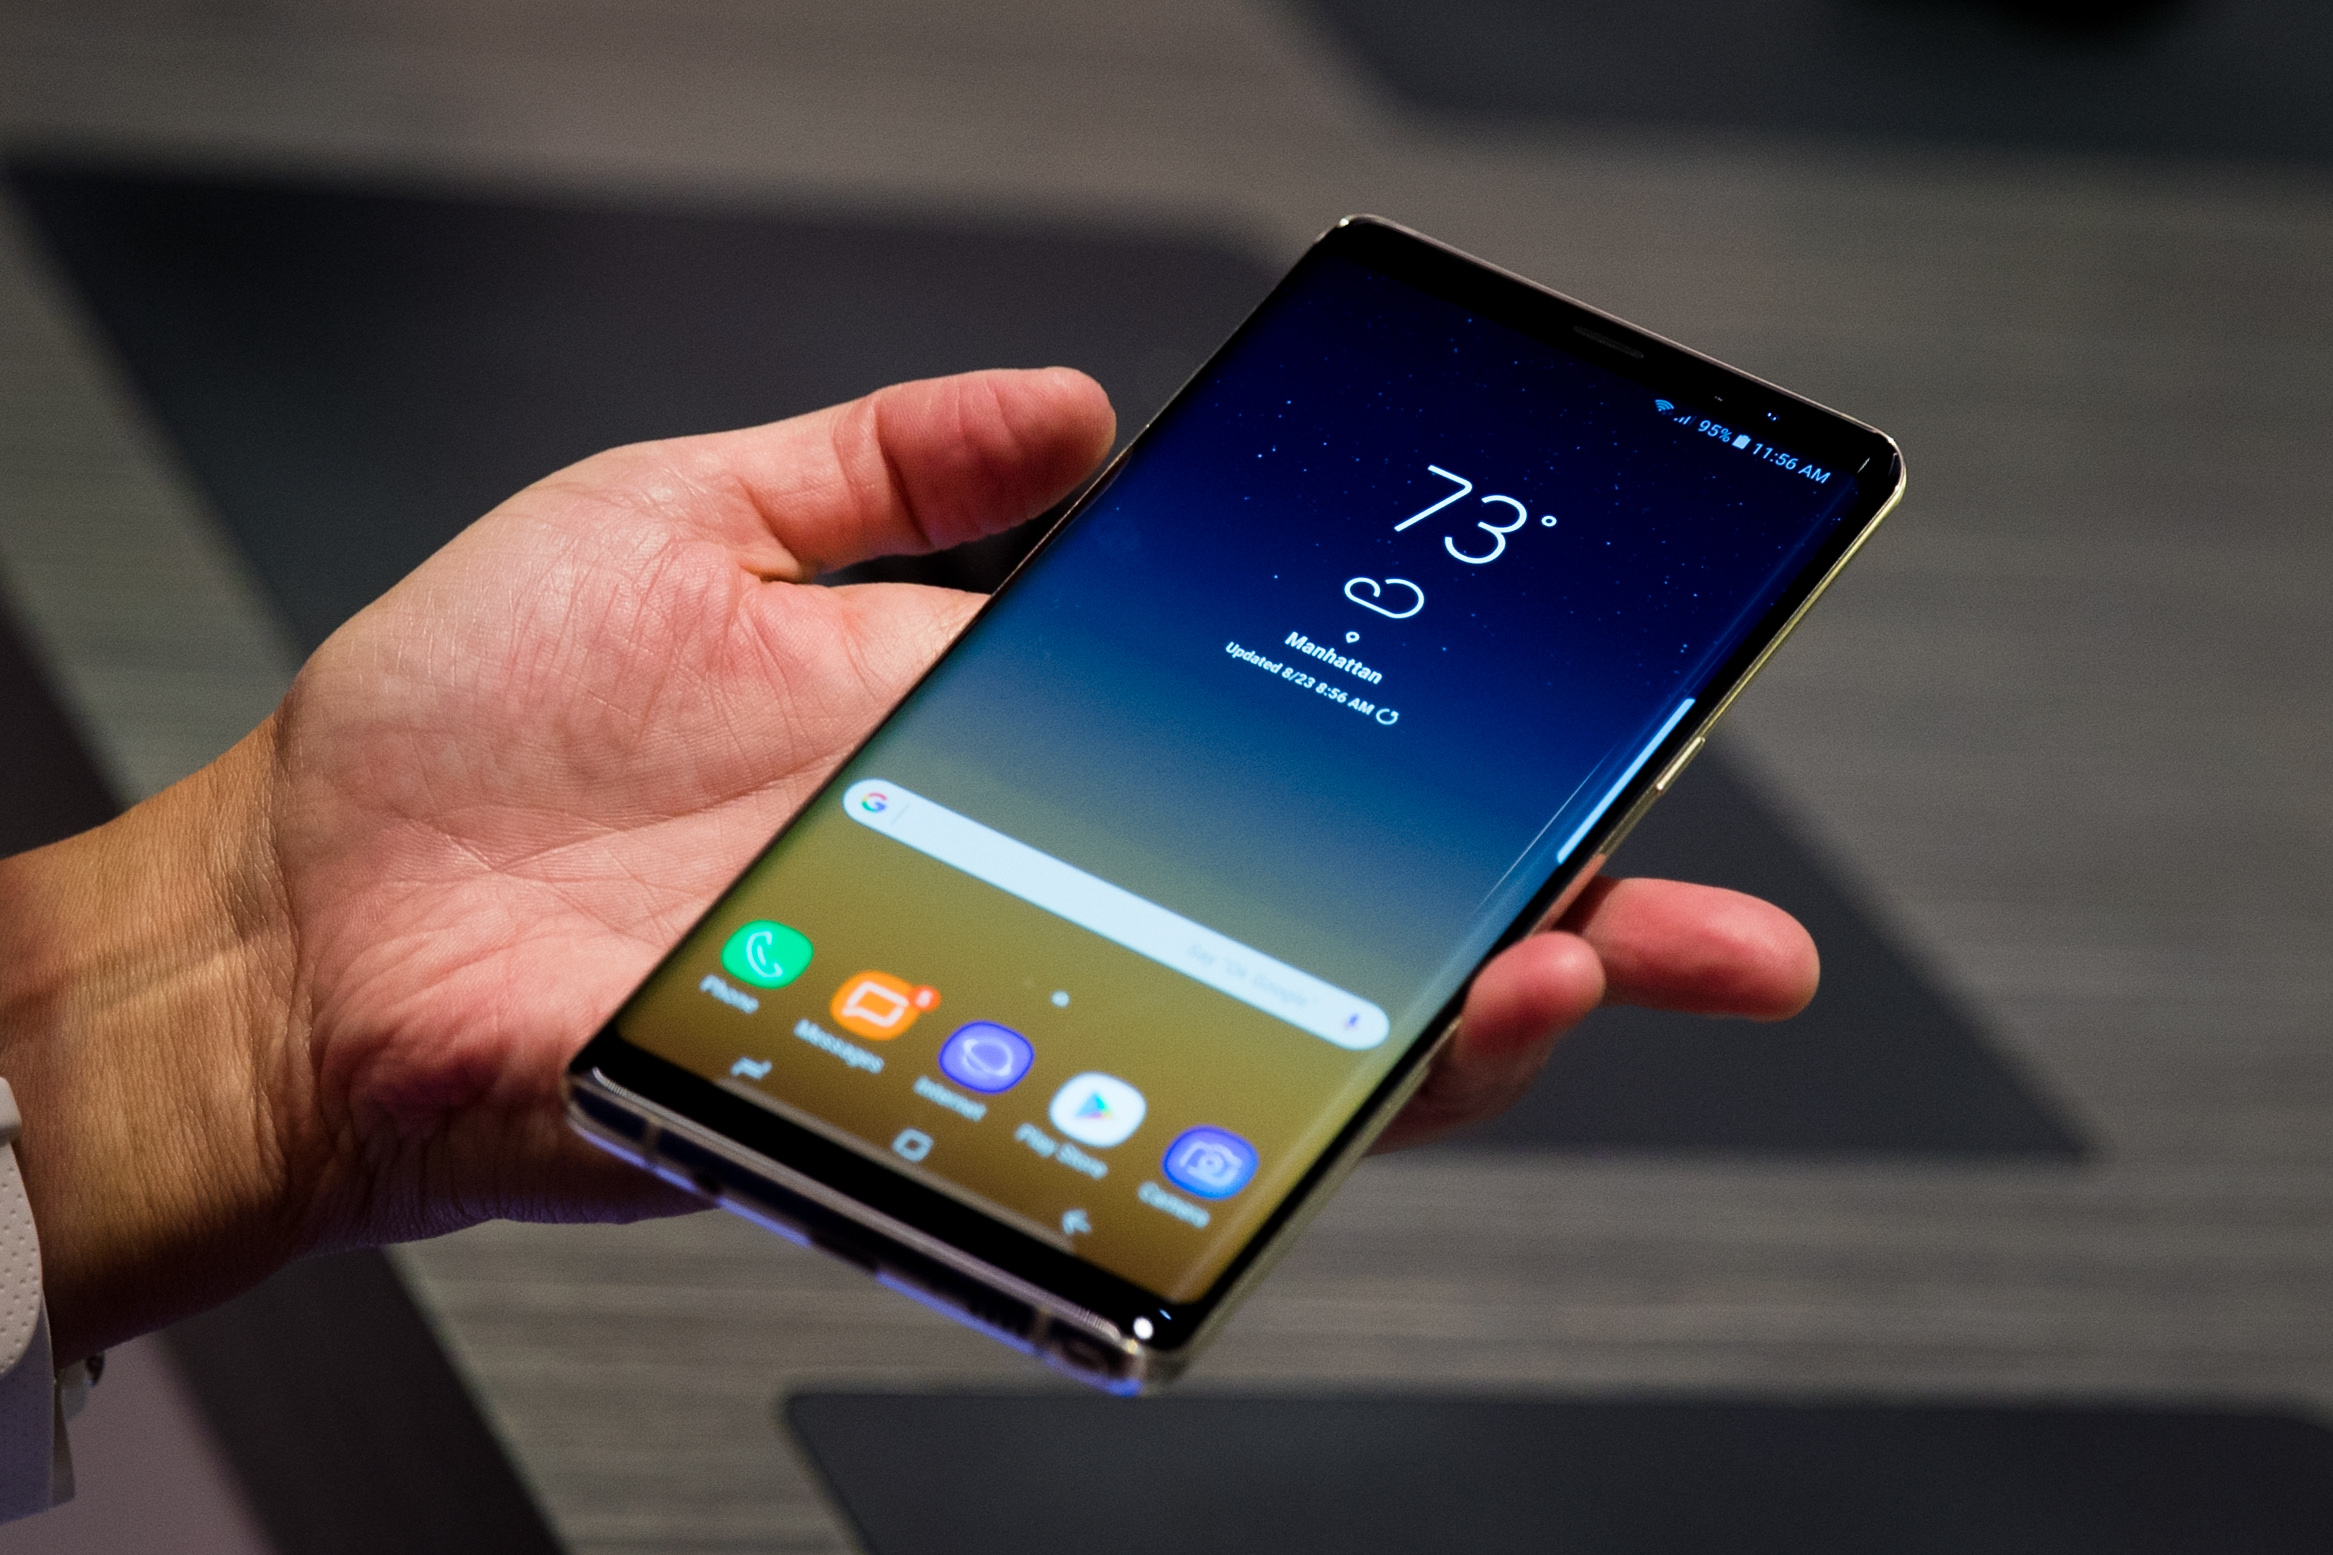 The new Samsung Galaxy Note 8 smartphone covers most of the hand holding it.